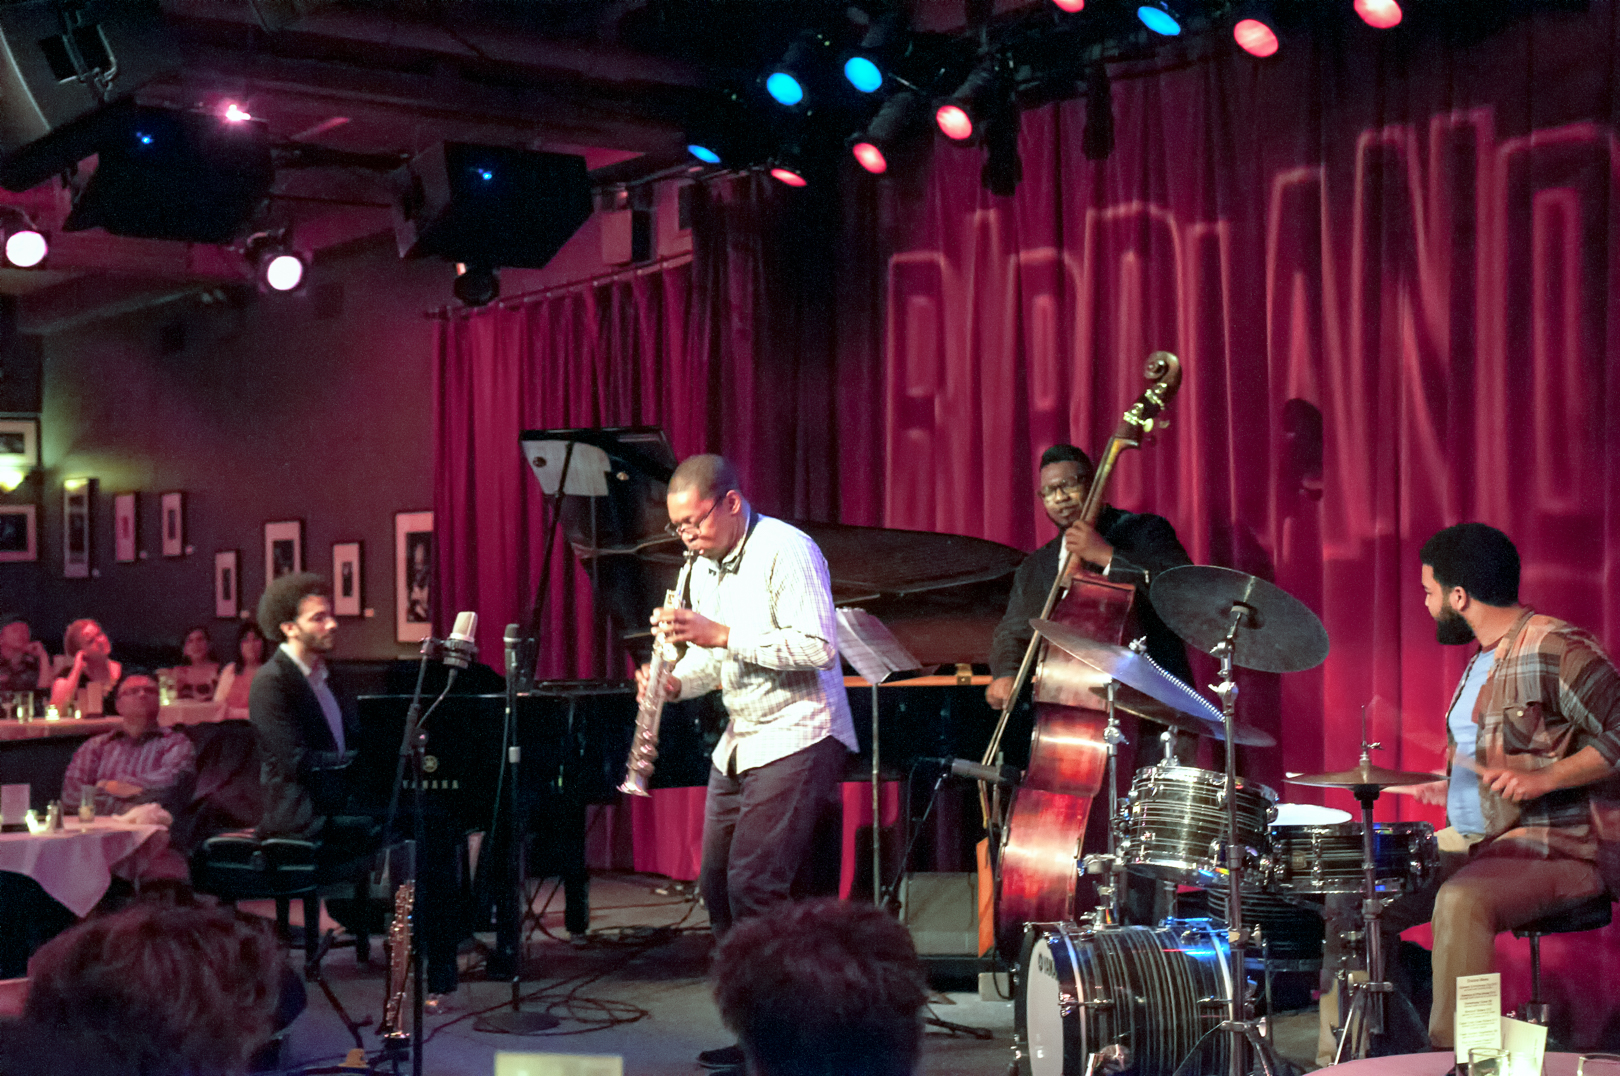 David Vireilles, Ravi Coltrane, Dezron Douglas and Kush Abadey with the Ravi Coltrane Quartet at Birdland Jazz Club in Nyc